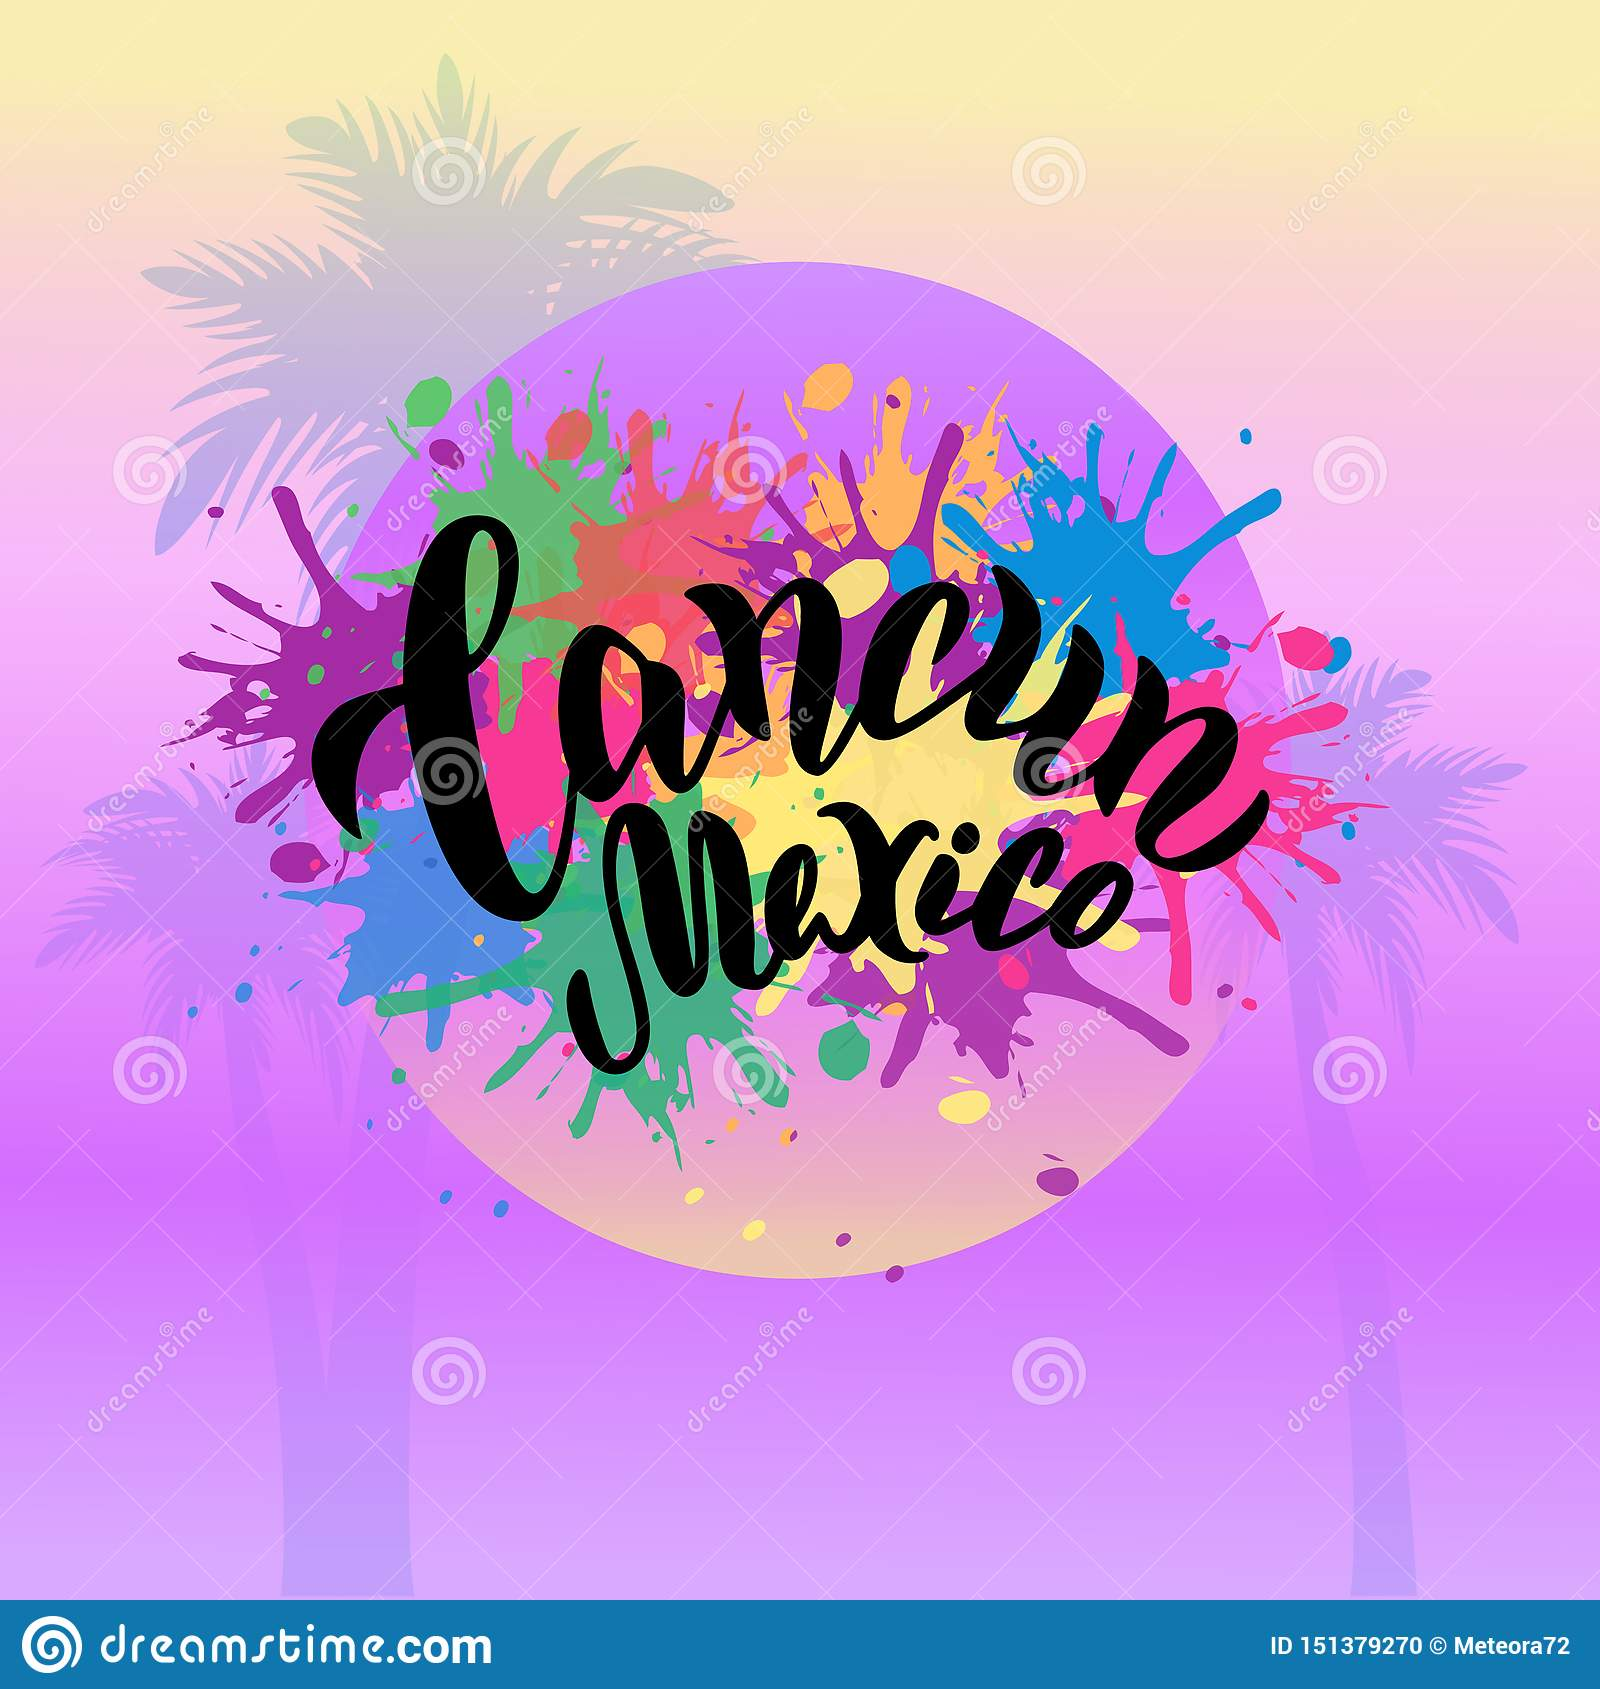 Cancun Mexico Colorful Poster Trendy Lettering Typography Text Beach Party Banner Print Design Stock Vector Illustration Of Graphic Colorful 151379270